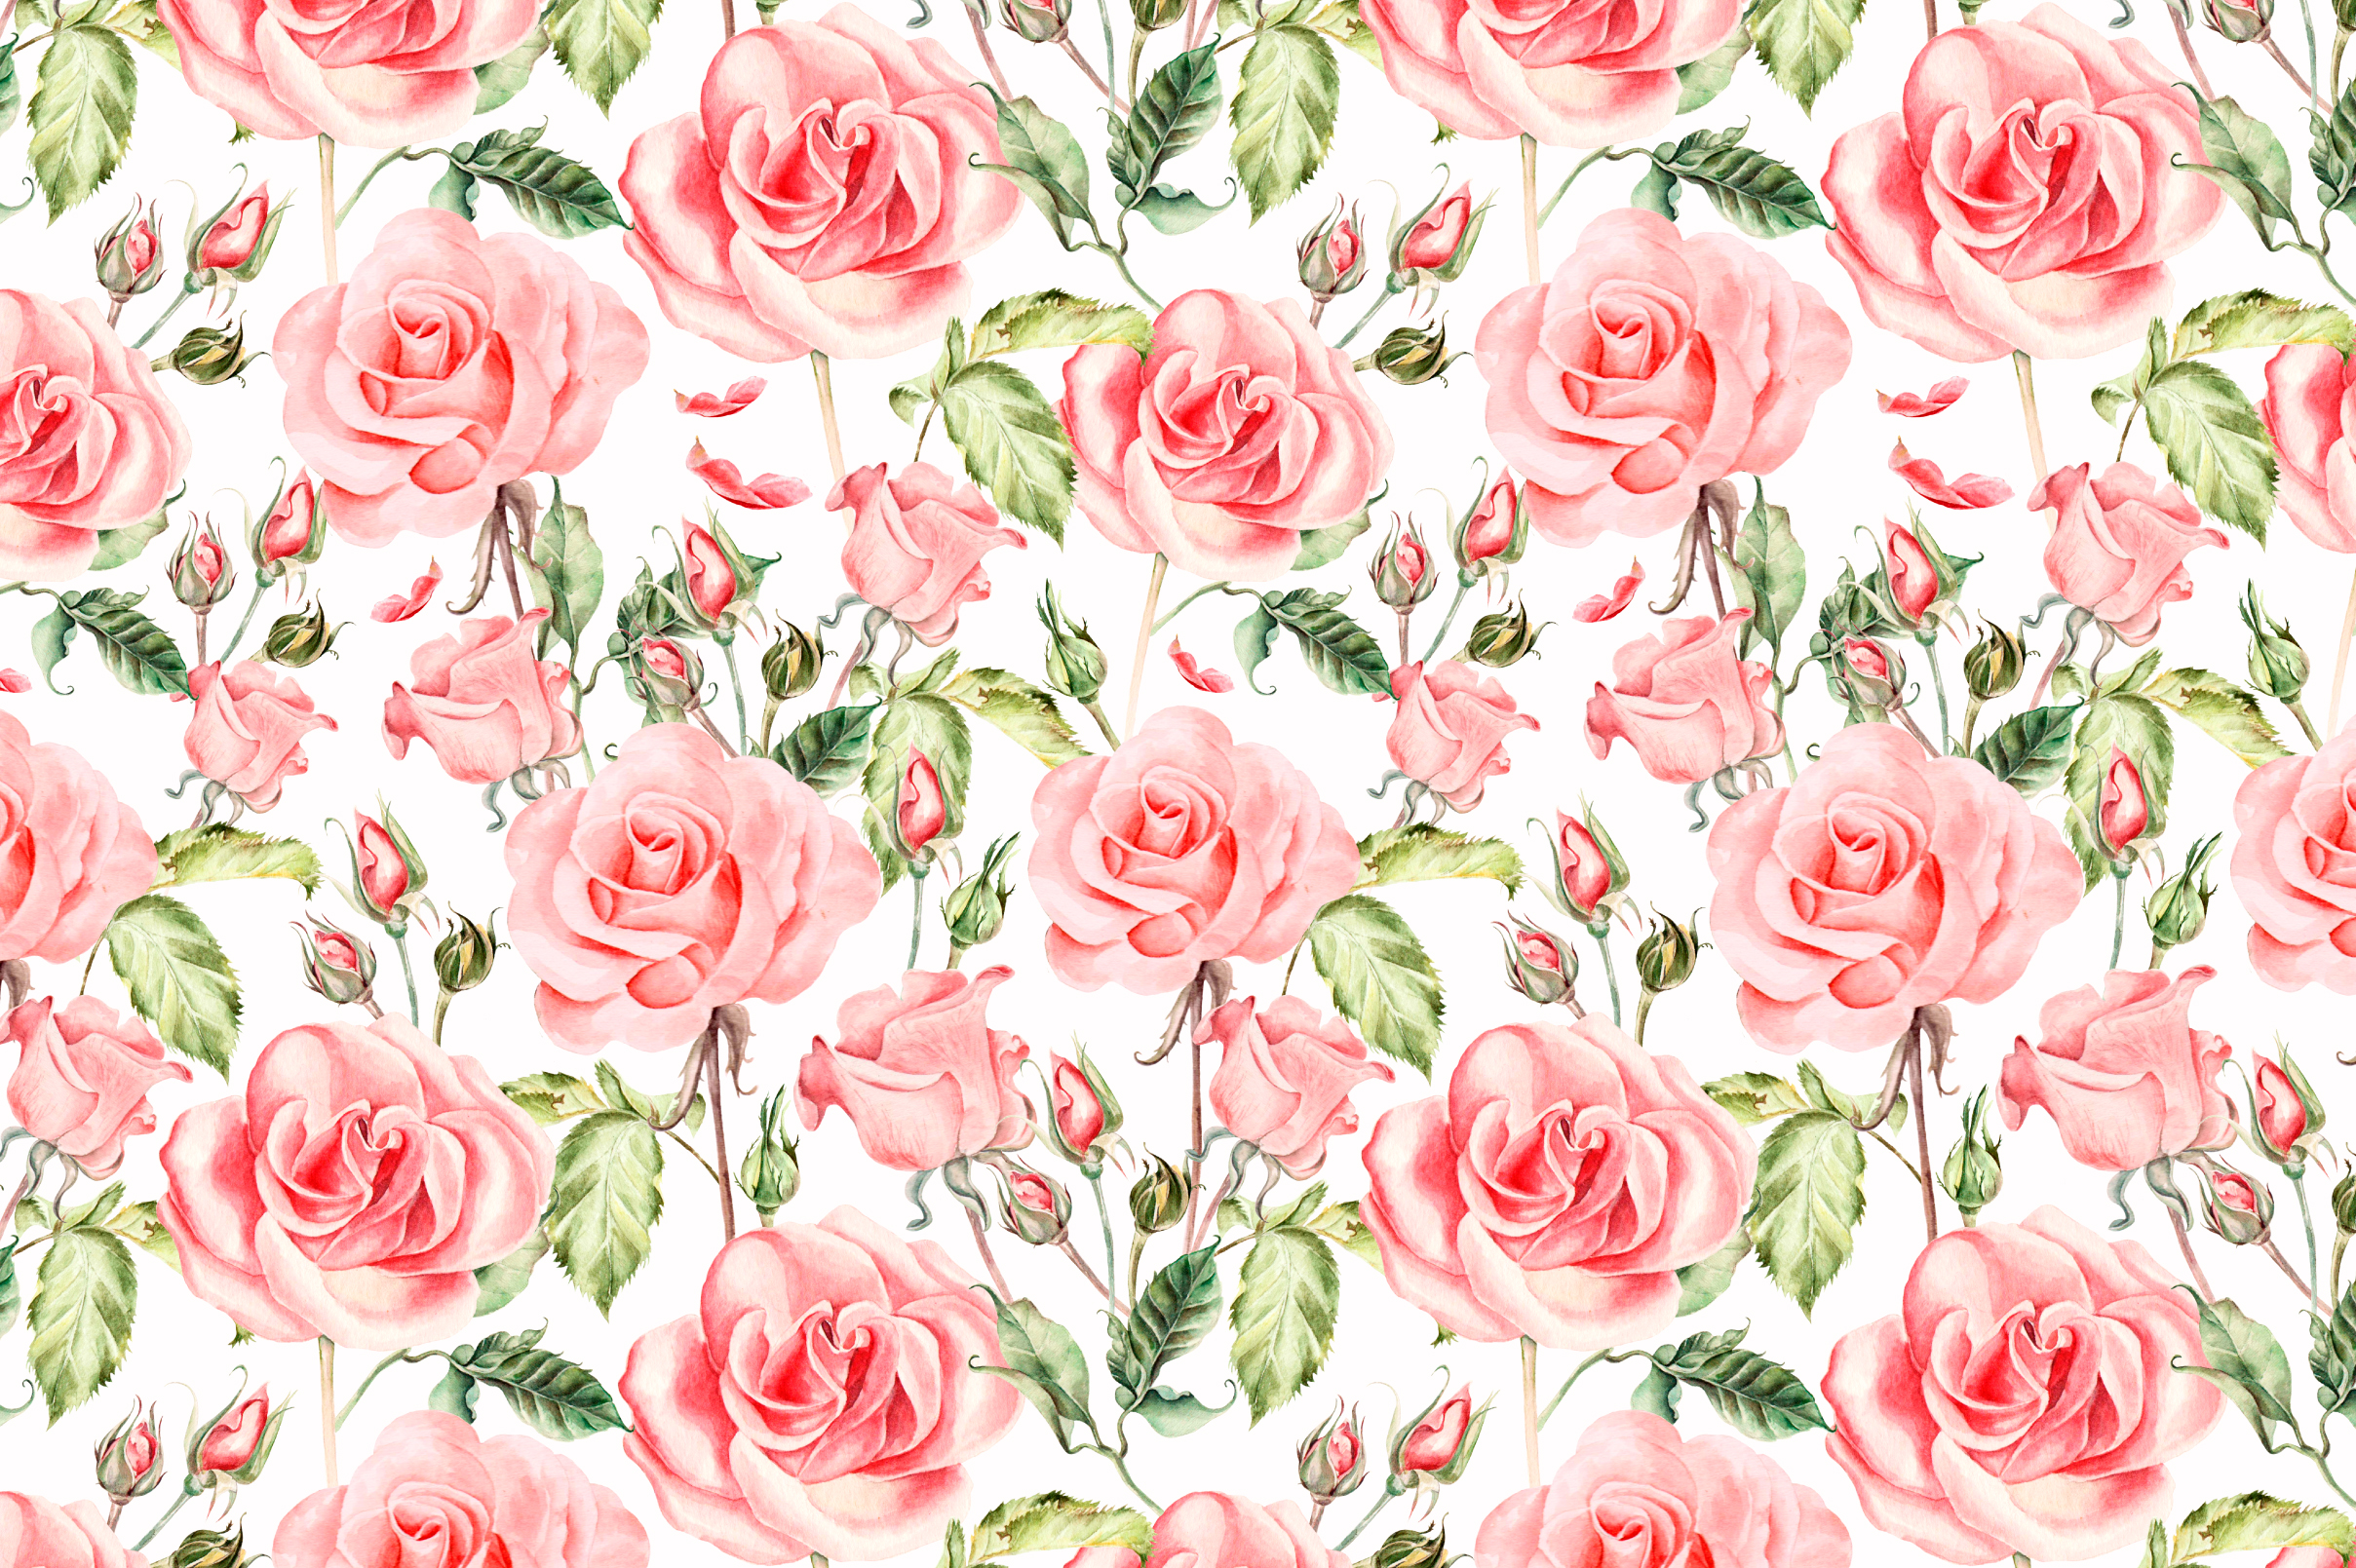 Hand drawn watercolor roses example image 5